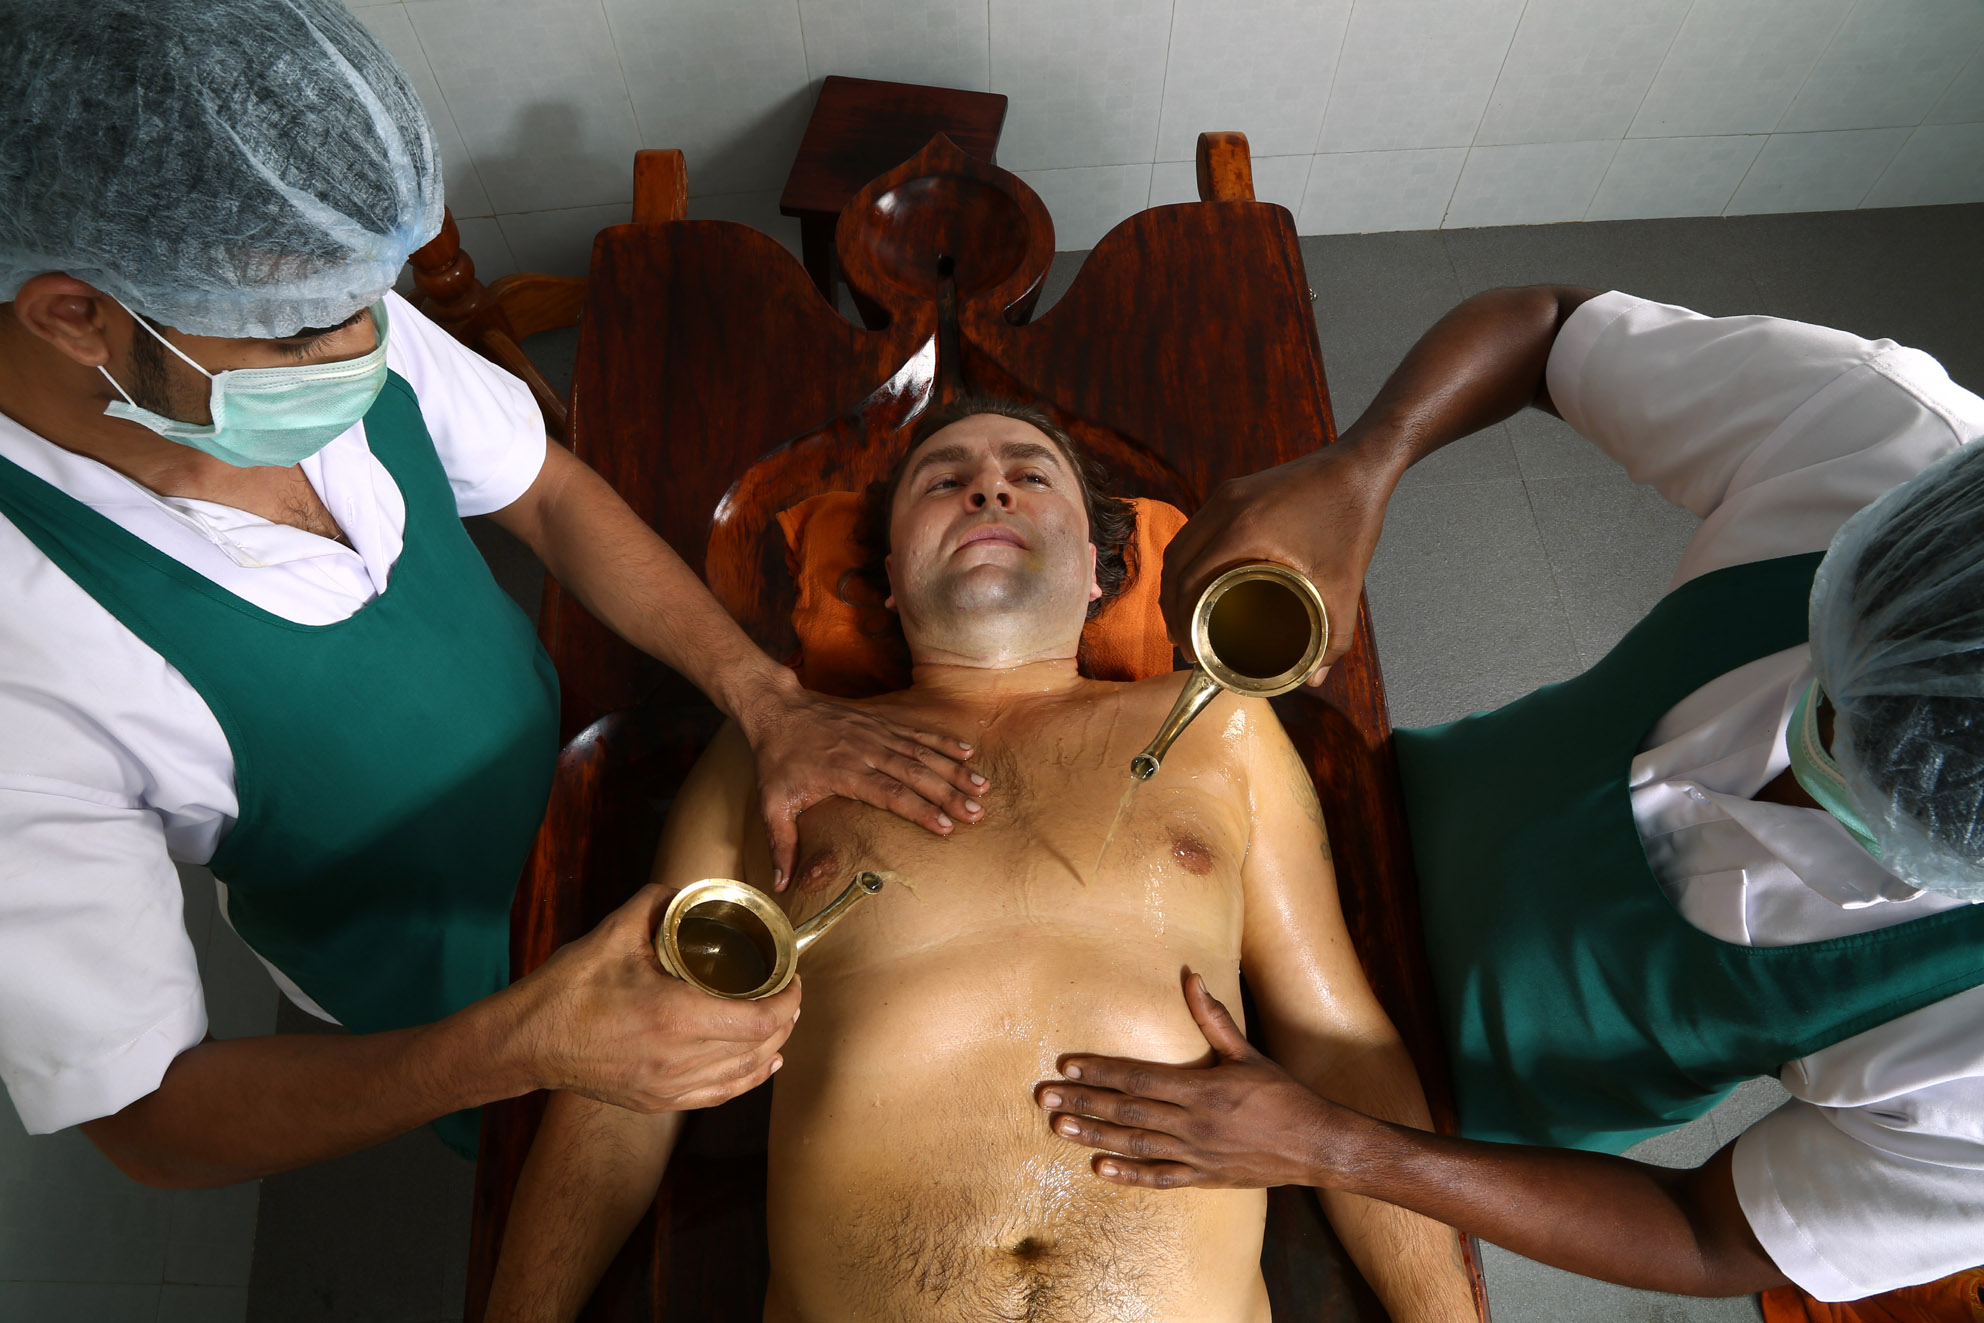 Ayurveda treatment centres in kerala, Panchakarma centres in kerala, ayurveda hospitals in kerala, ayurveda packages kerala , ayurveda hospitals in kerala, best ayurveda resort in kerala , Ayurveda in kerala, Ayurveda treatment centres in kerala